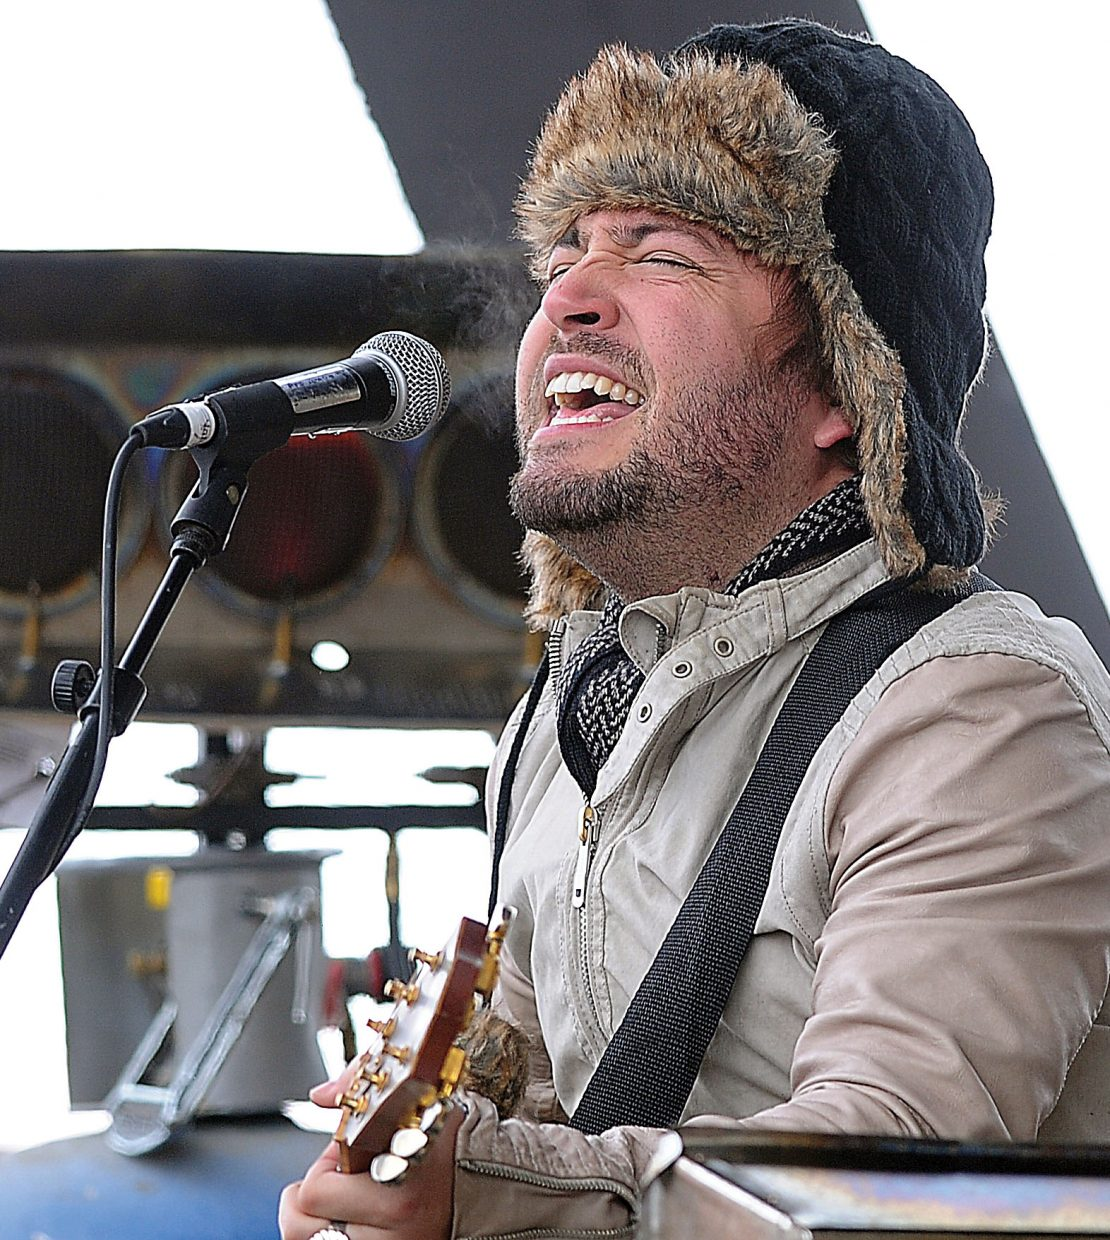 Nino Cooper, of the Dirty River Boys, entertains the crowd Tuesday at the base of Steamboat Ski Area as part of a free concert associated with MusicFest.